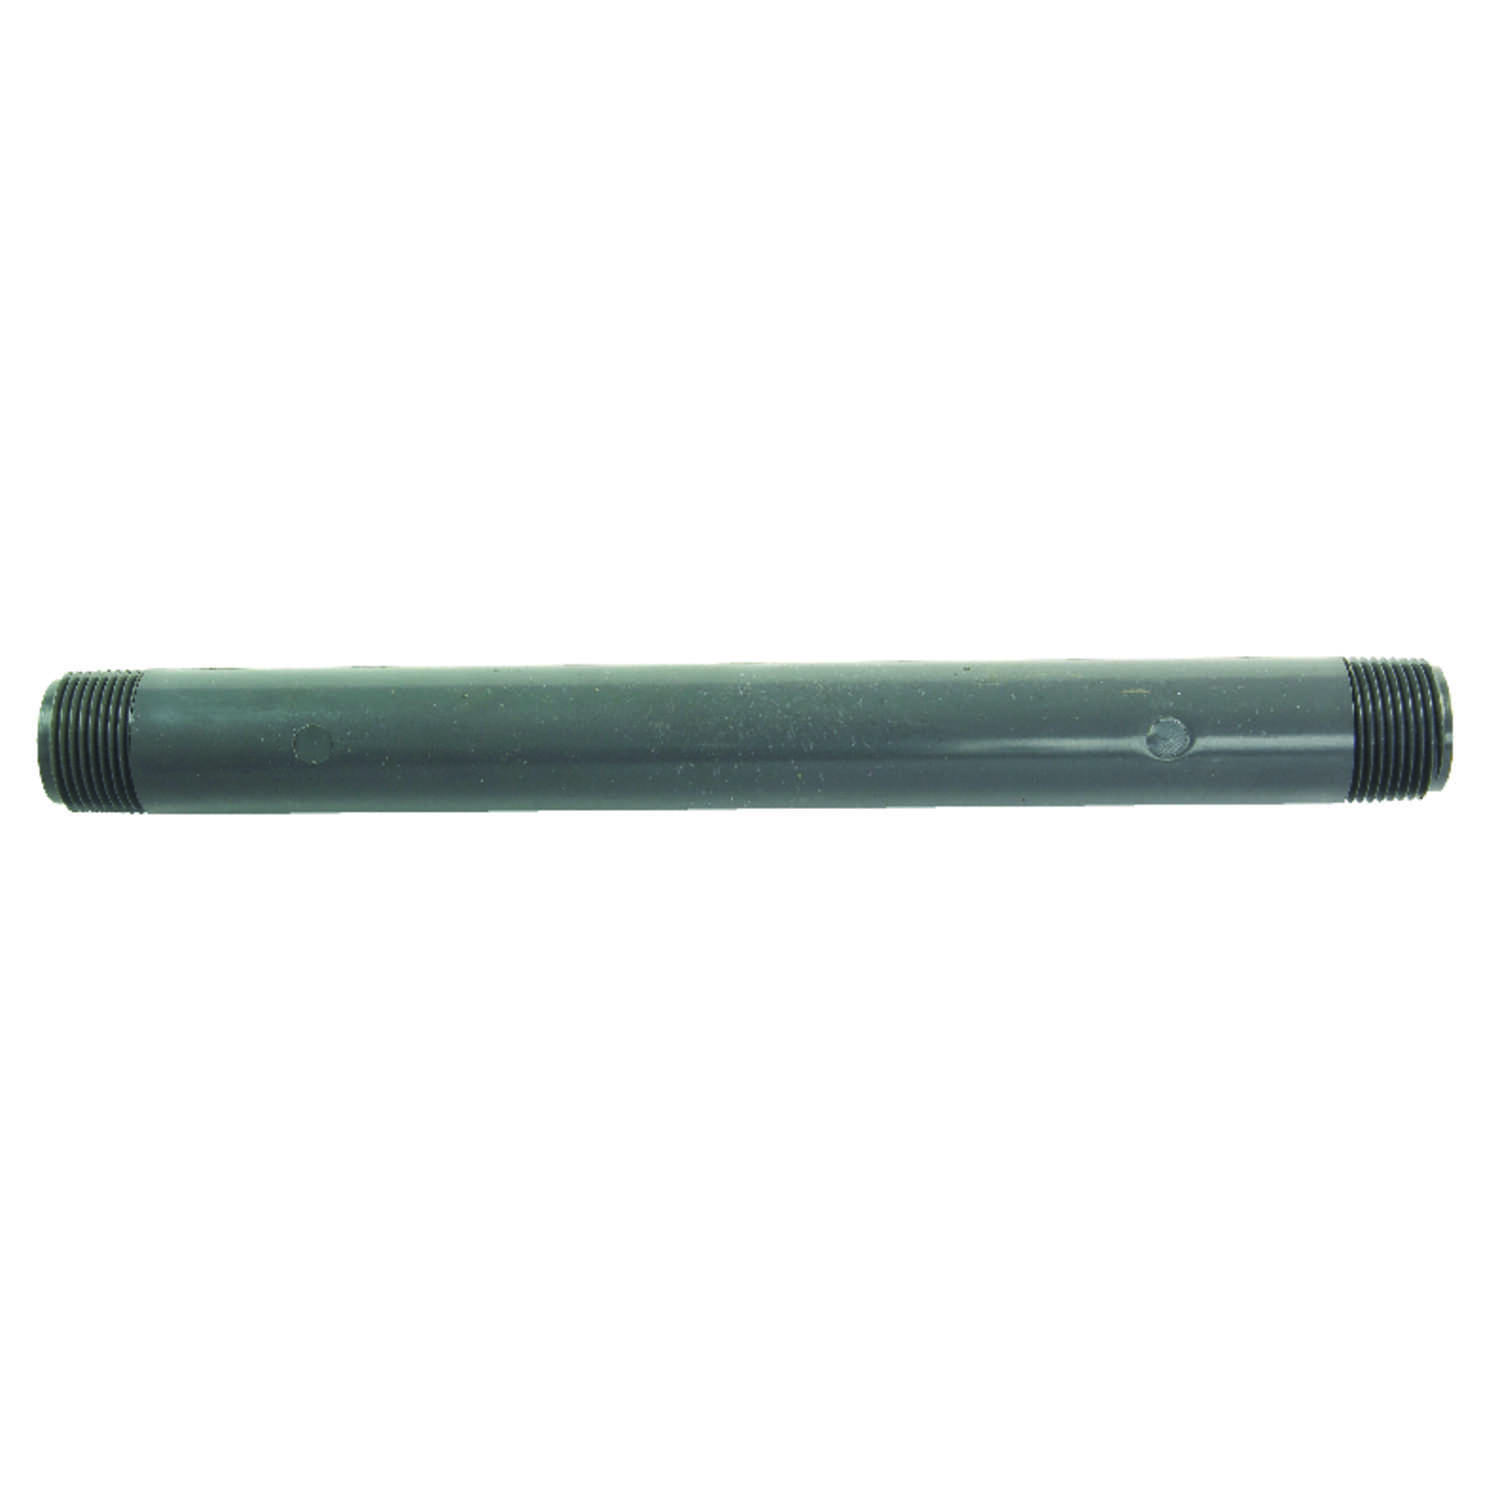 BK Products  Schedule 80  1/2 in. MPT   x 1/2 in. Dia. MPT  PVC  For Pressure Applications Pipe Nipp